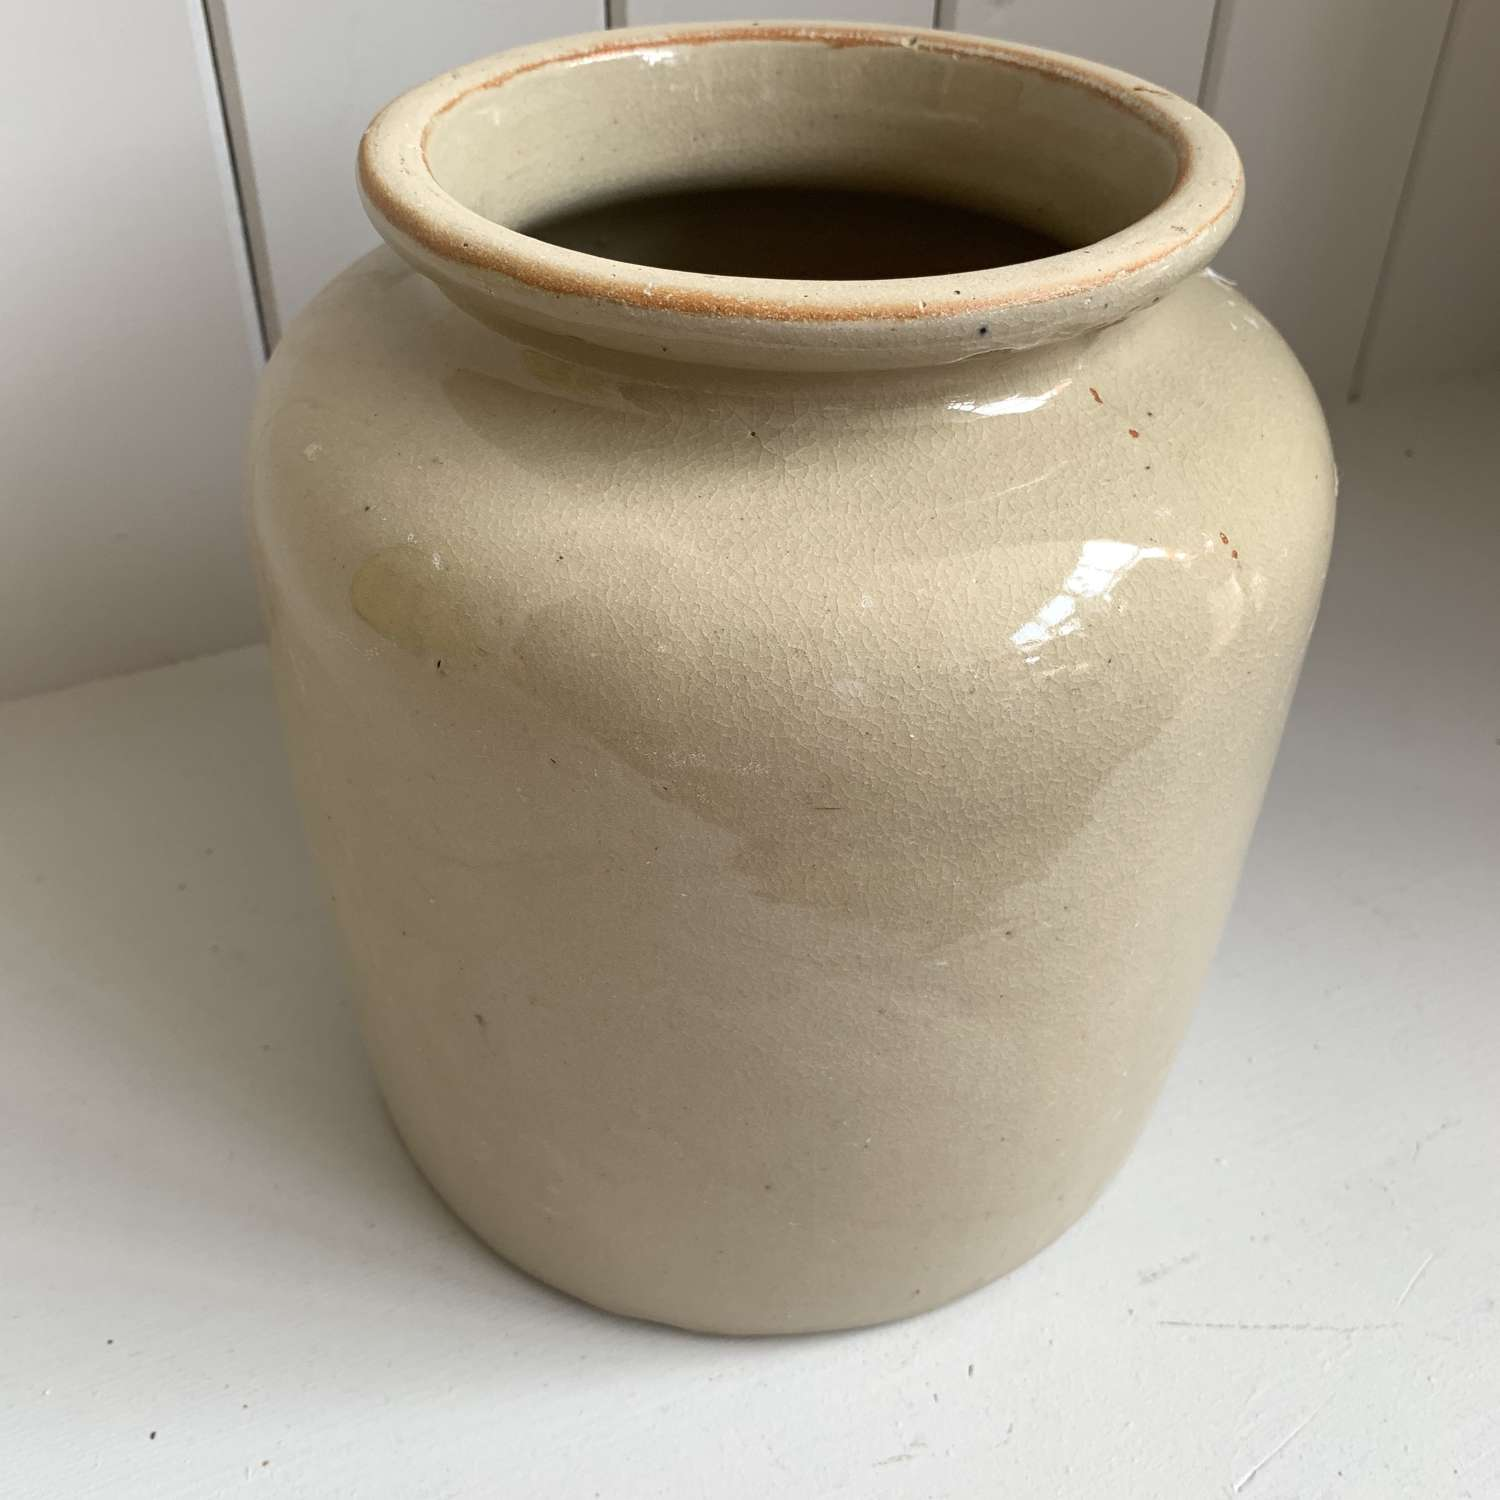 French stoneware confit pot